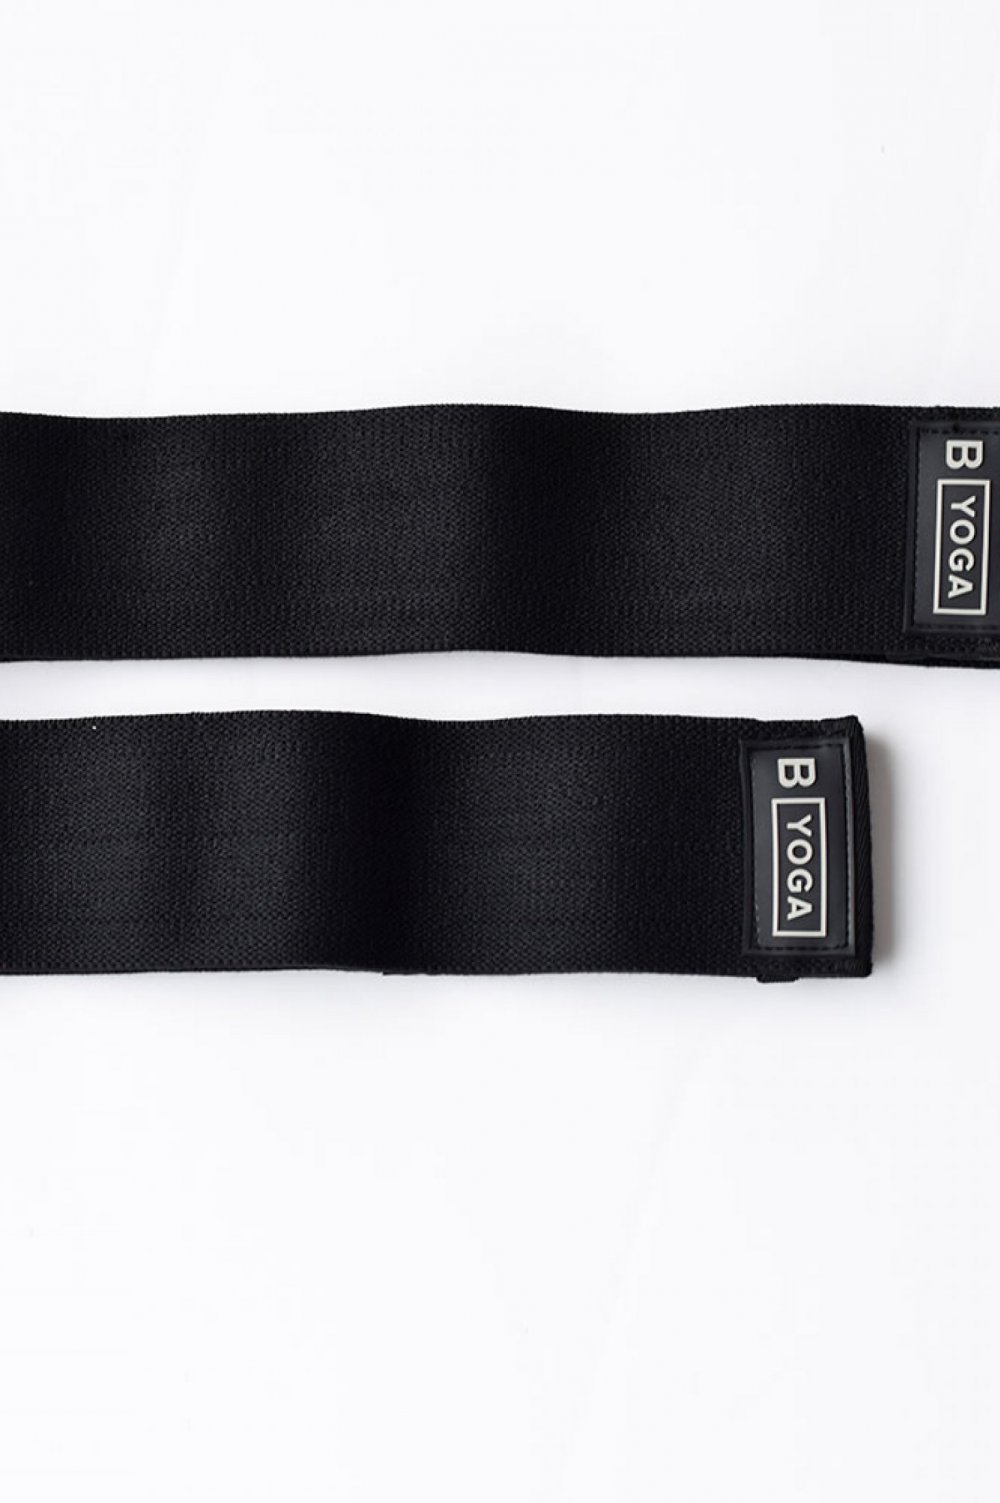 B Yoga THE BUILD BANDS -SLATE B YOGA